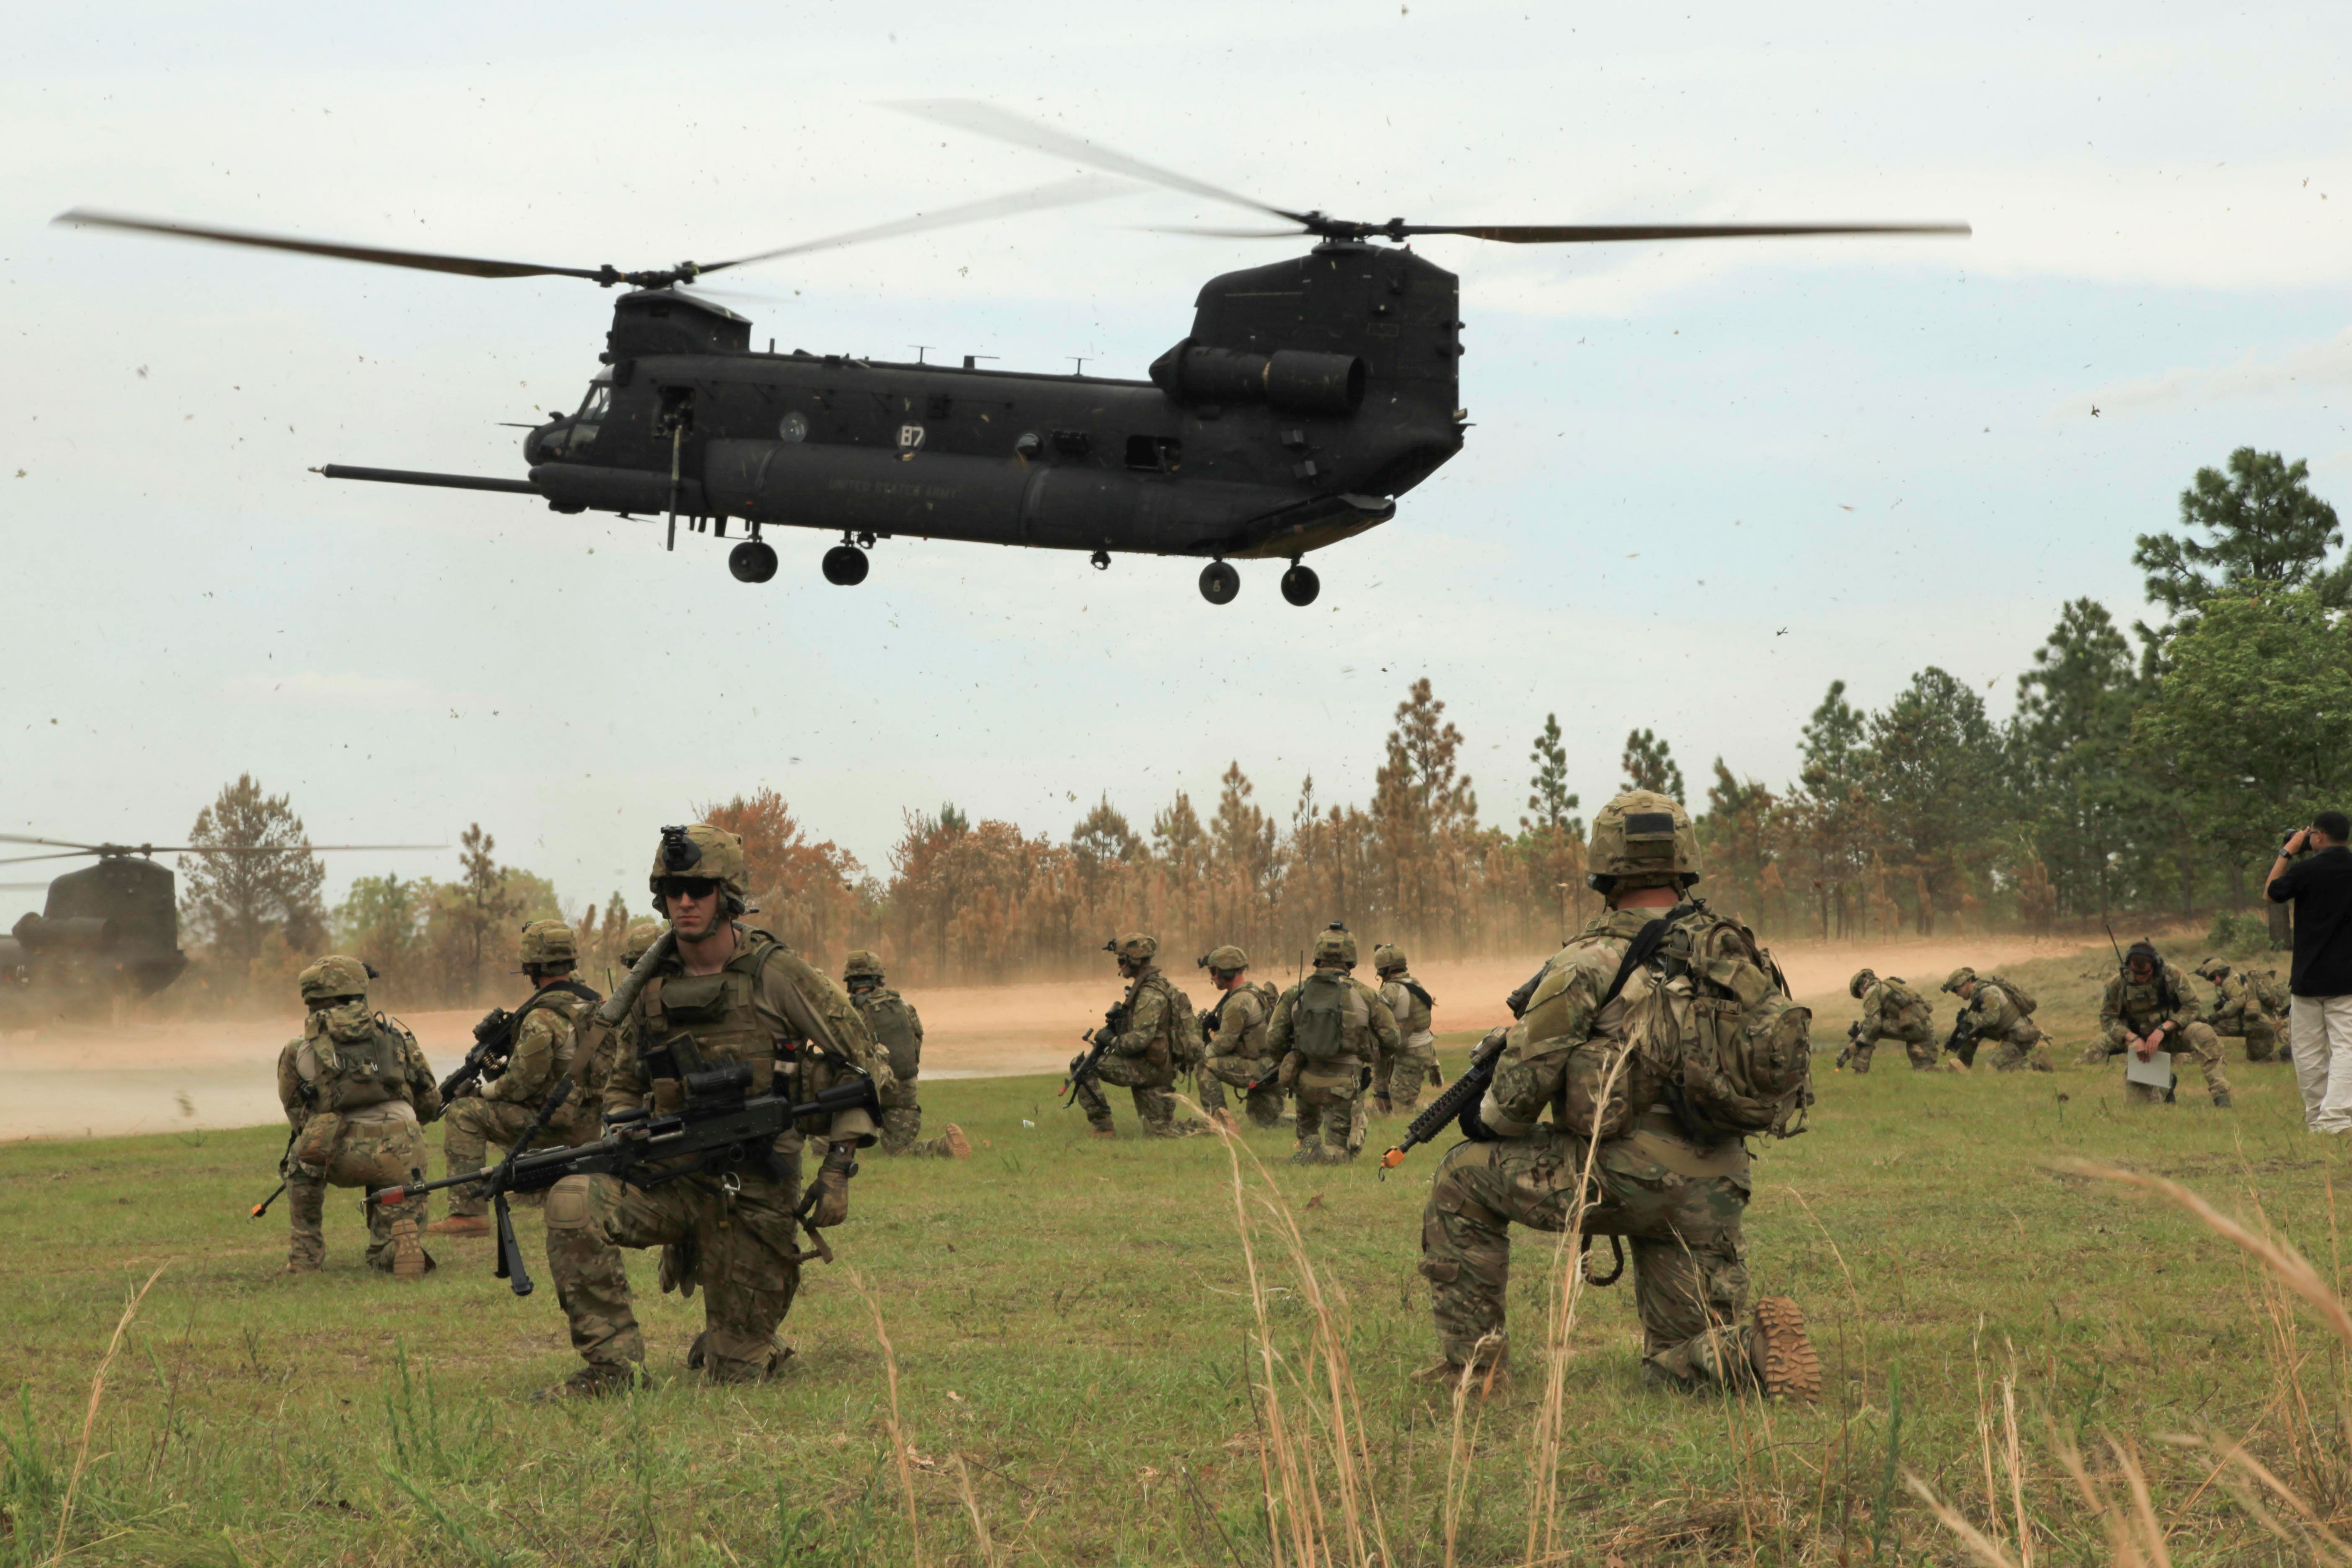 army rangers chinook hd wallpaper 6624 wallpaper sua